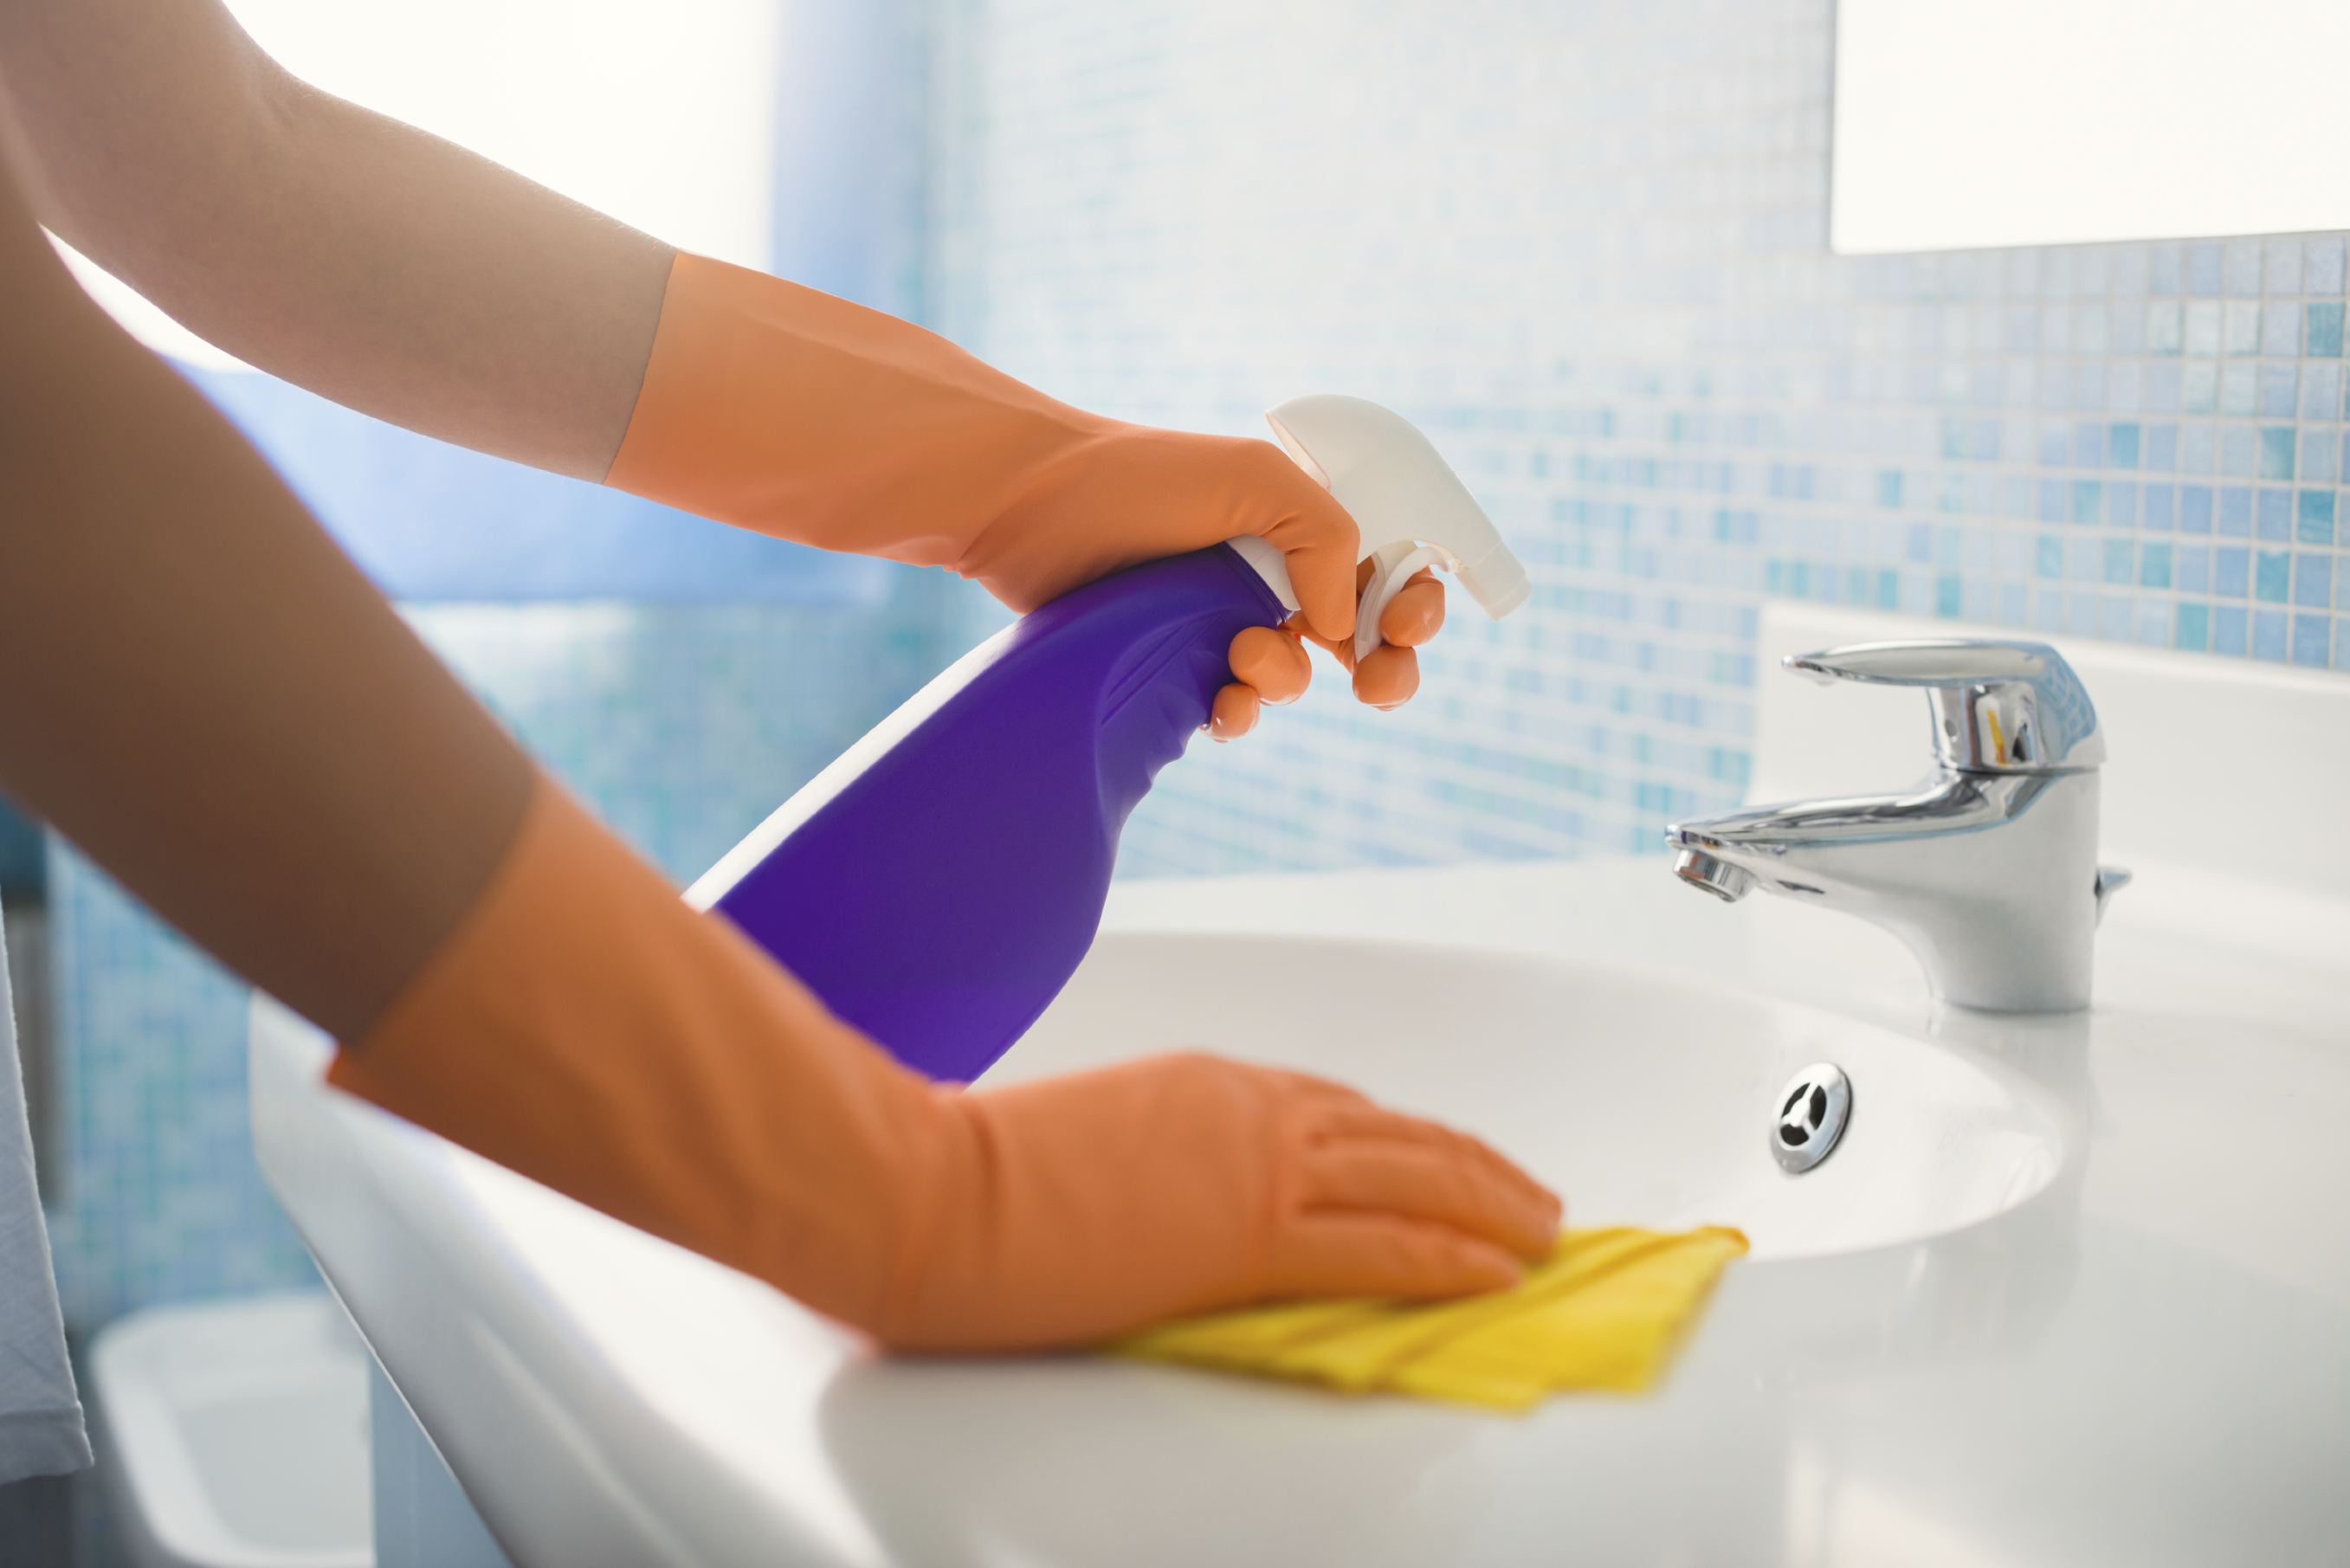 Cleaning the bathroom isn't always fun, but it can be easy. Here